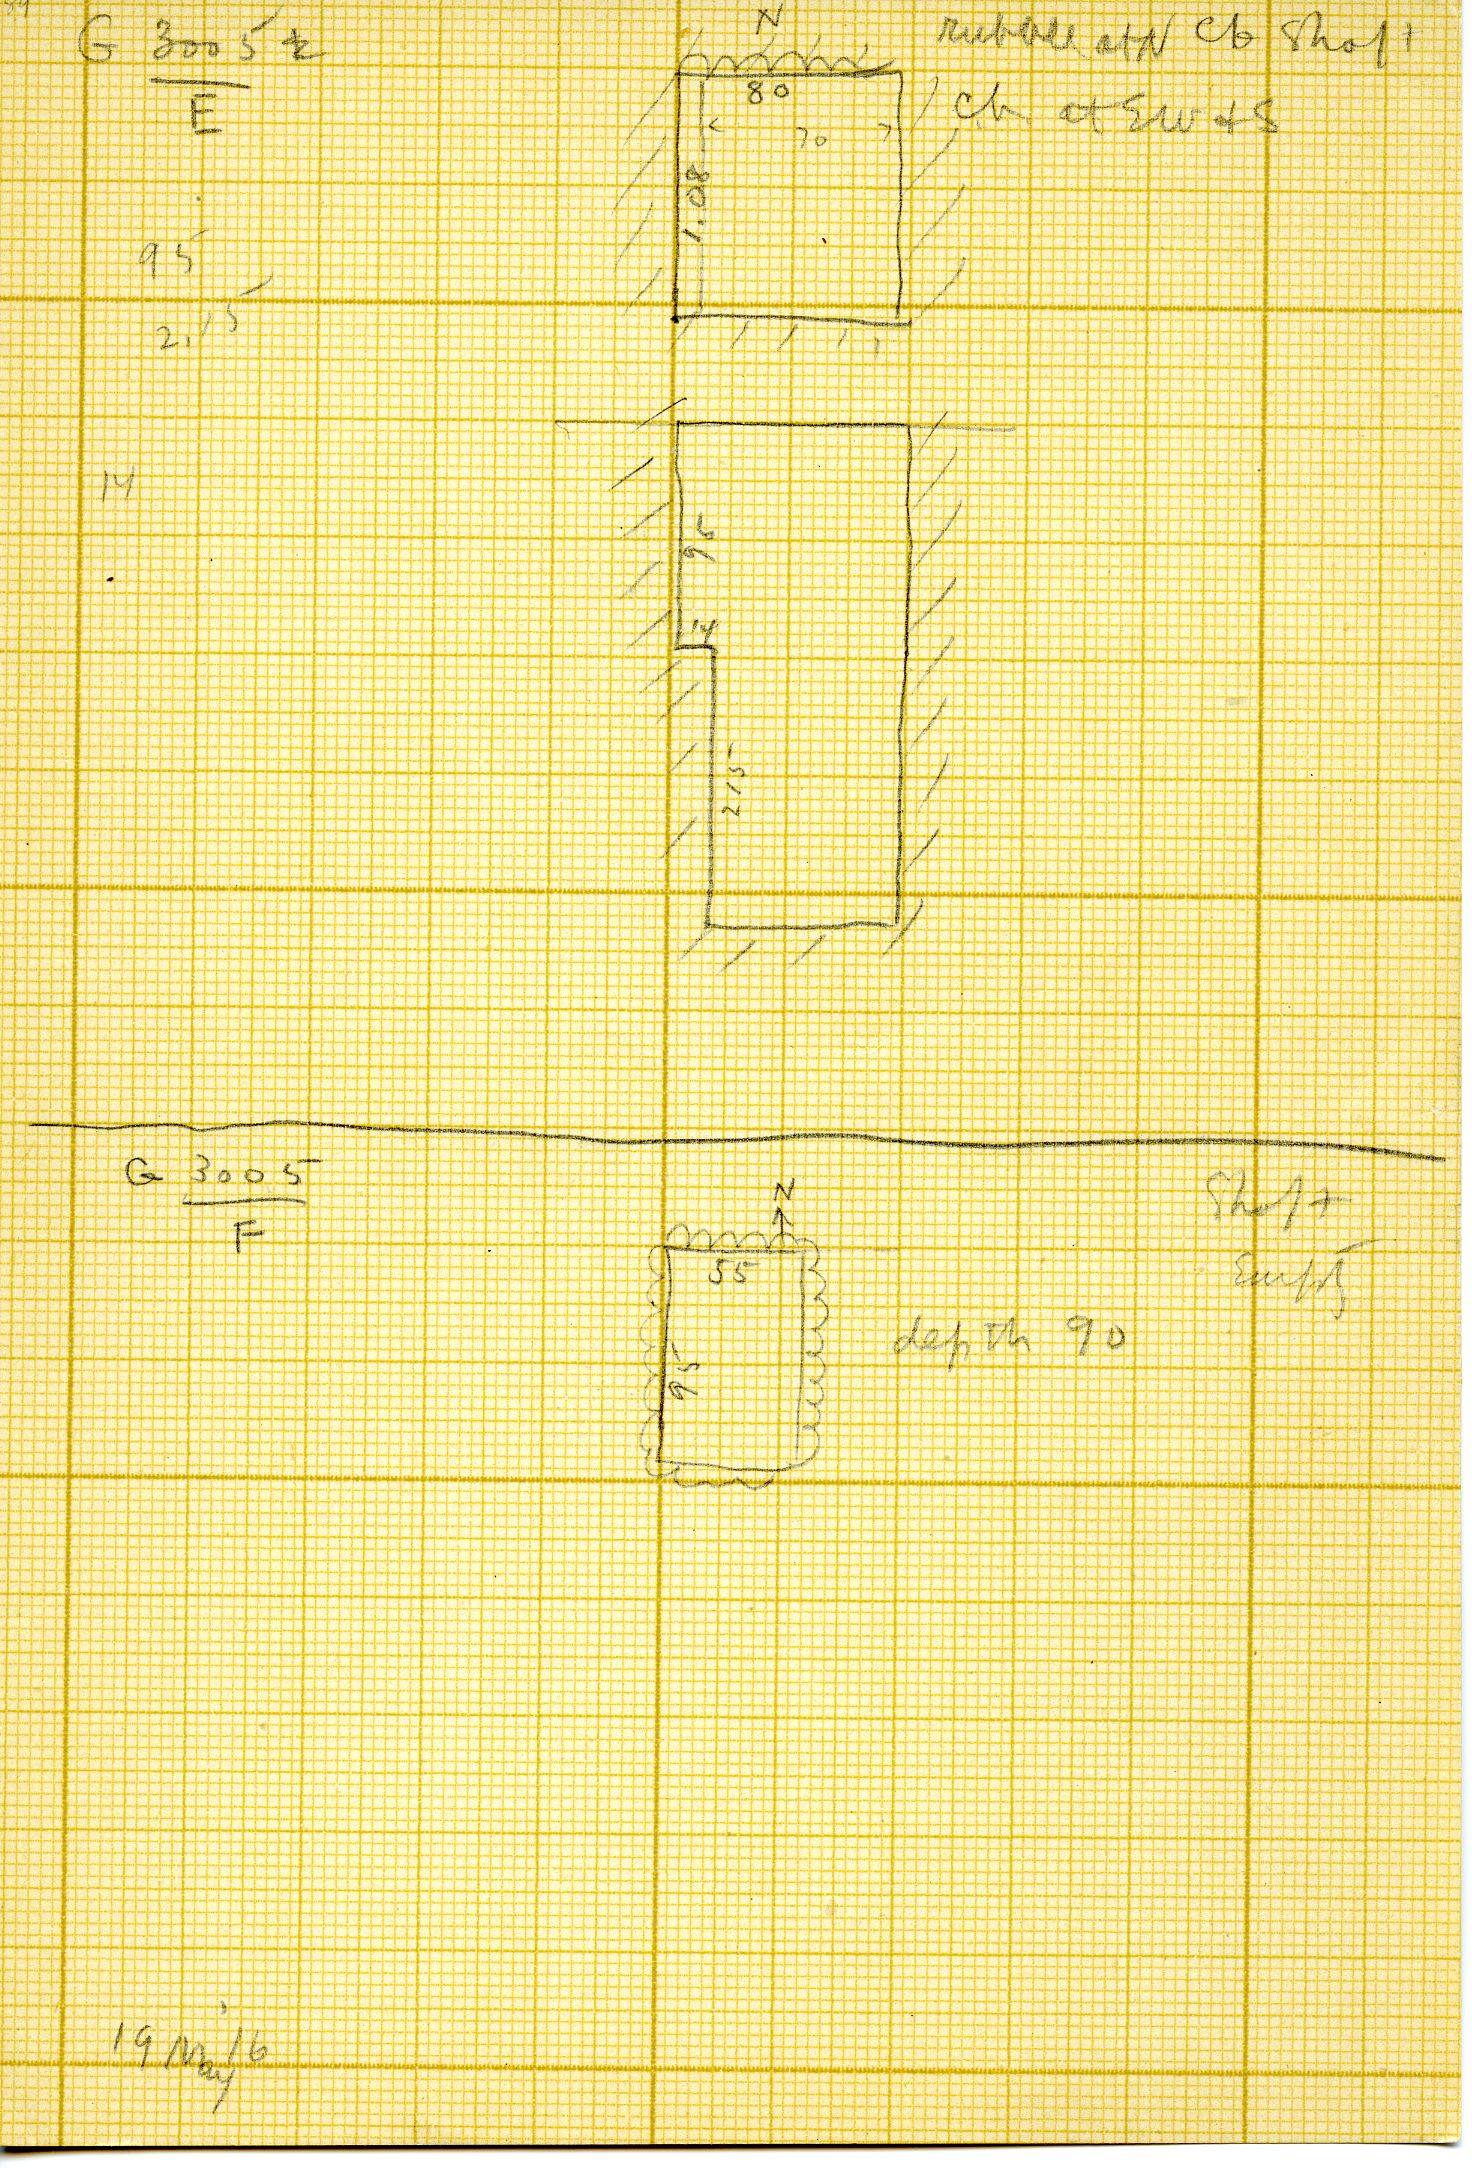 Maps and plans: G 3005, Shafts E, F